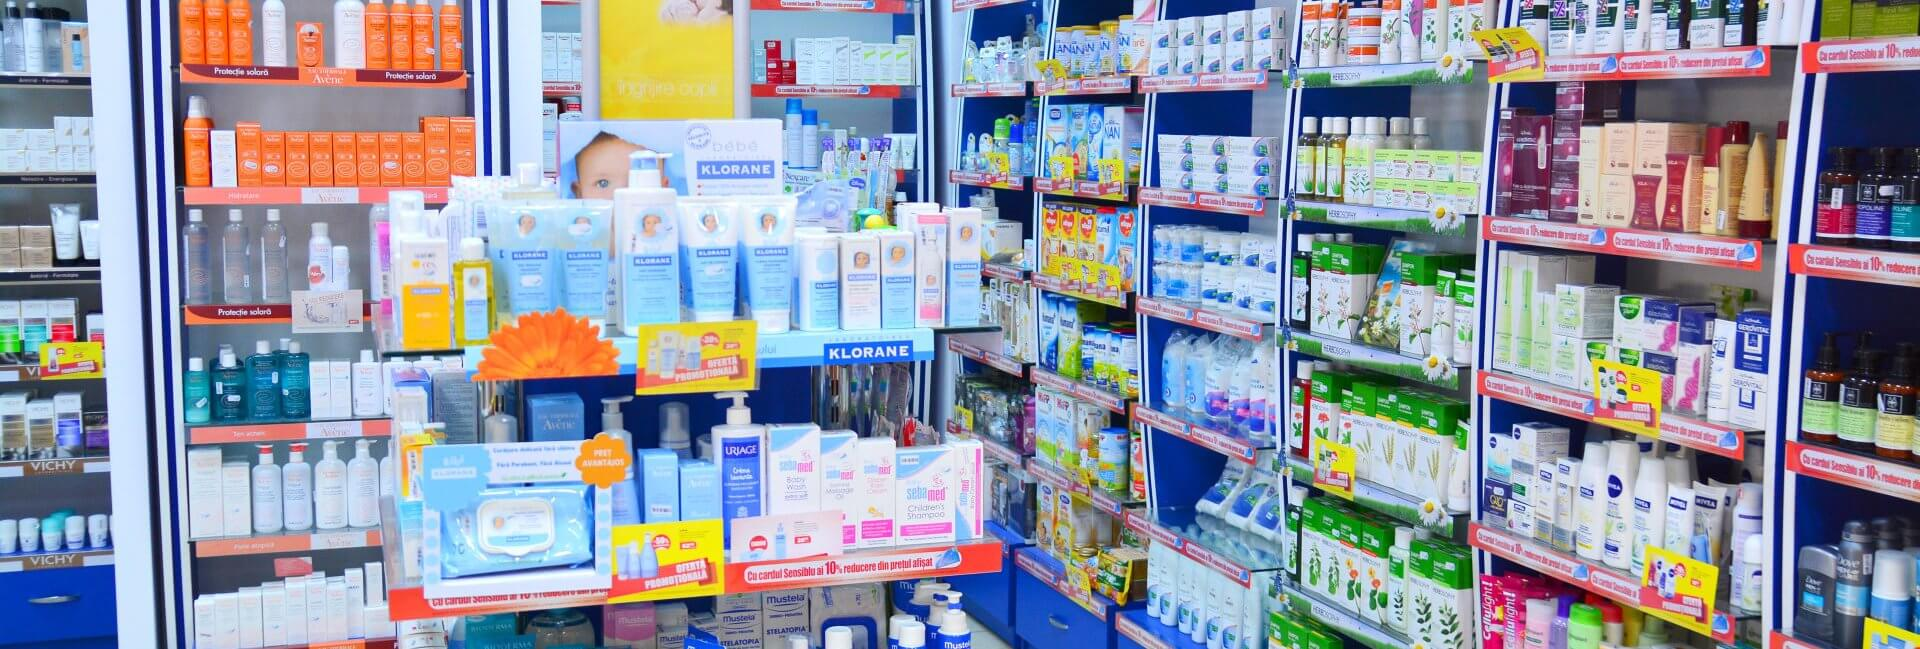 medicines inside the store